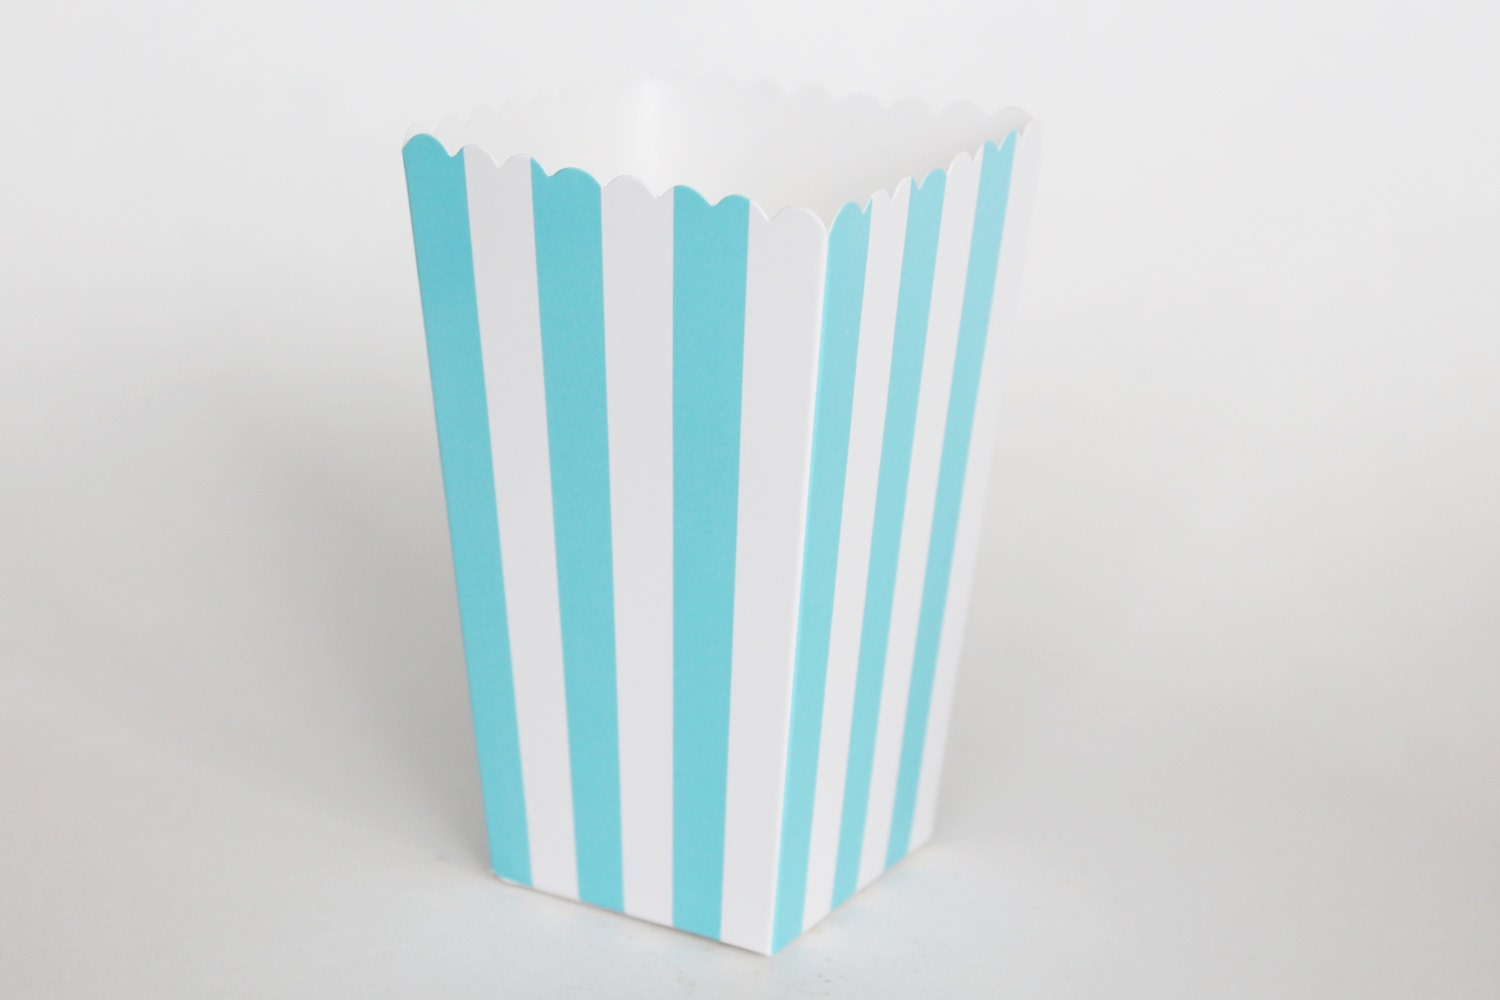 Blue Striped Popcorn Box-Pop Corn Scoop-Blue Favor Box-Party